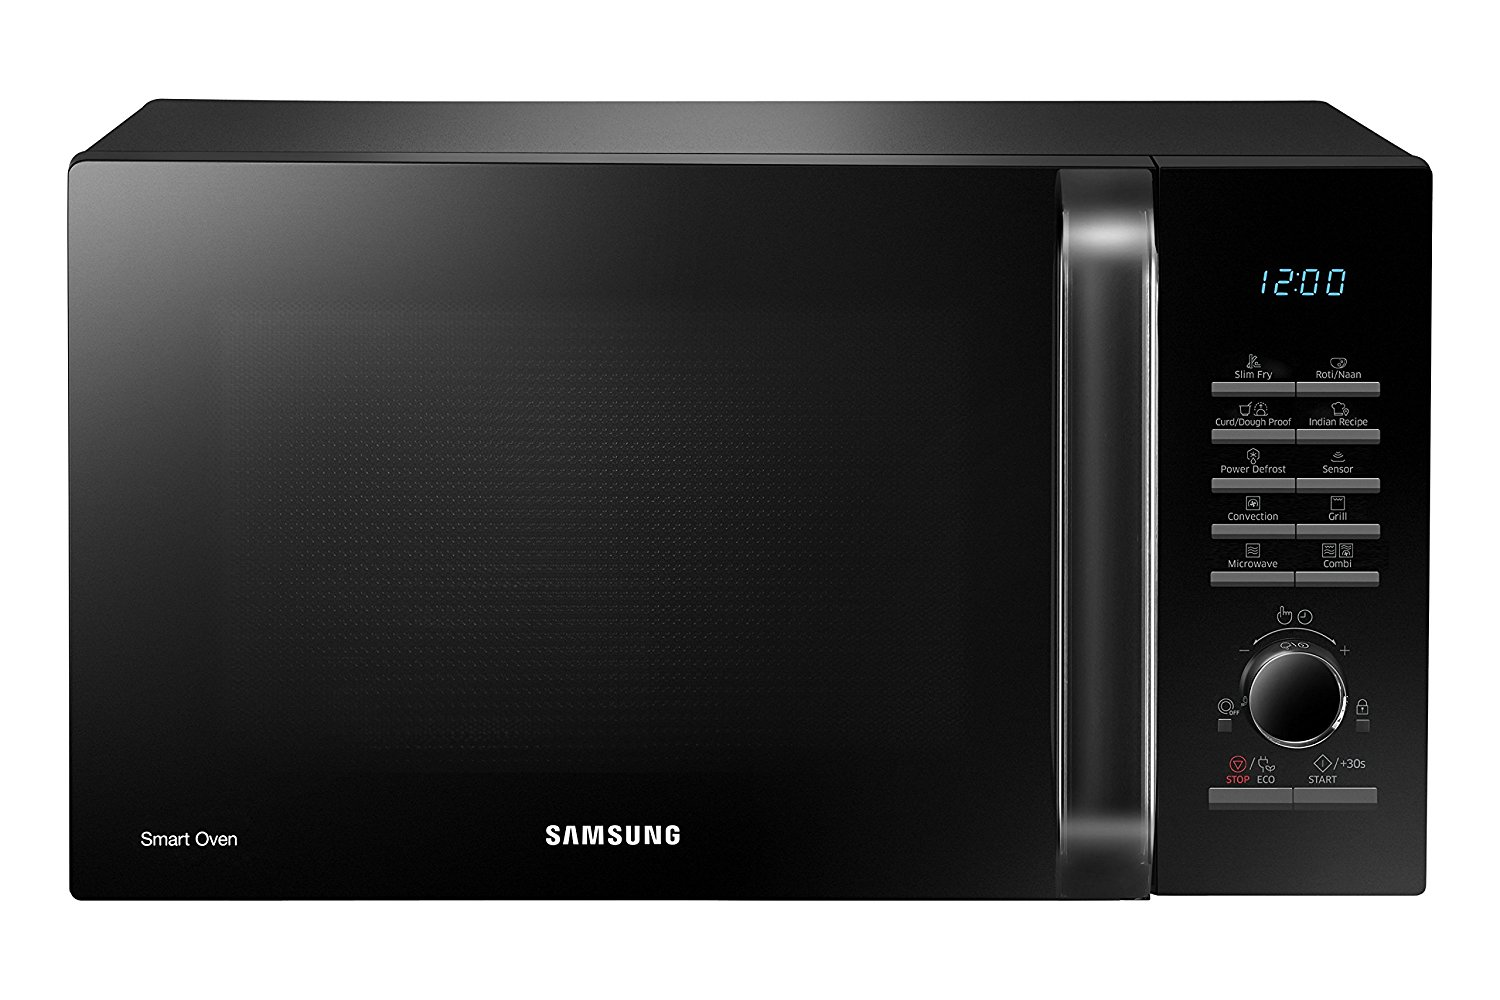 Samsung 28 L Convection Microwave Oven (MC28H5145VK, Black)